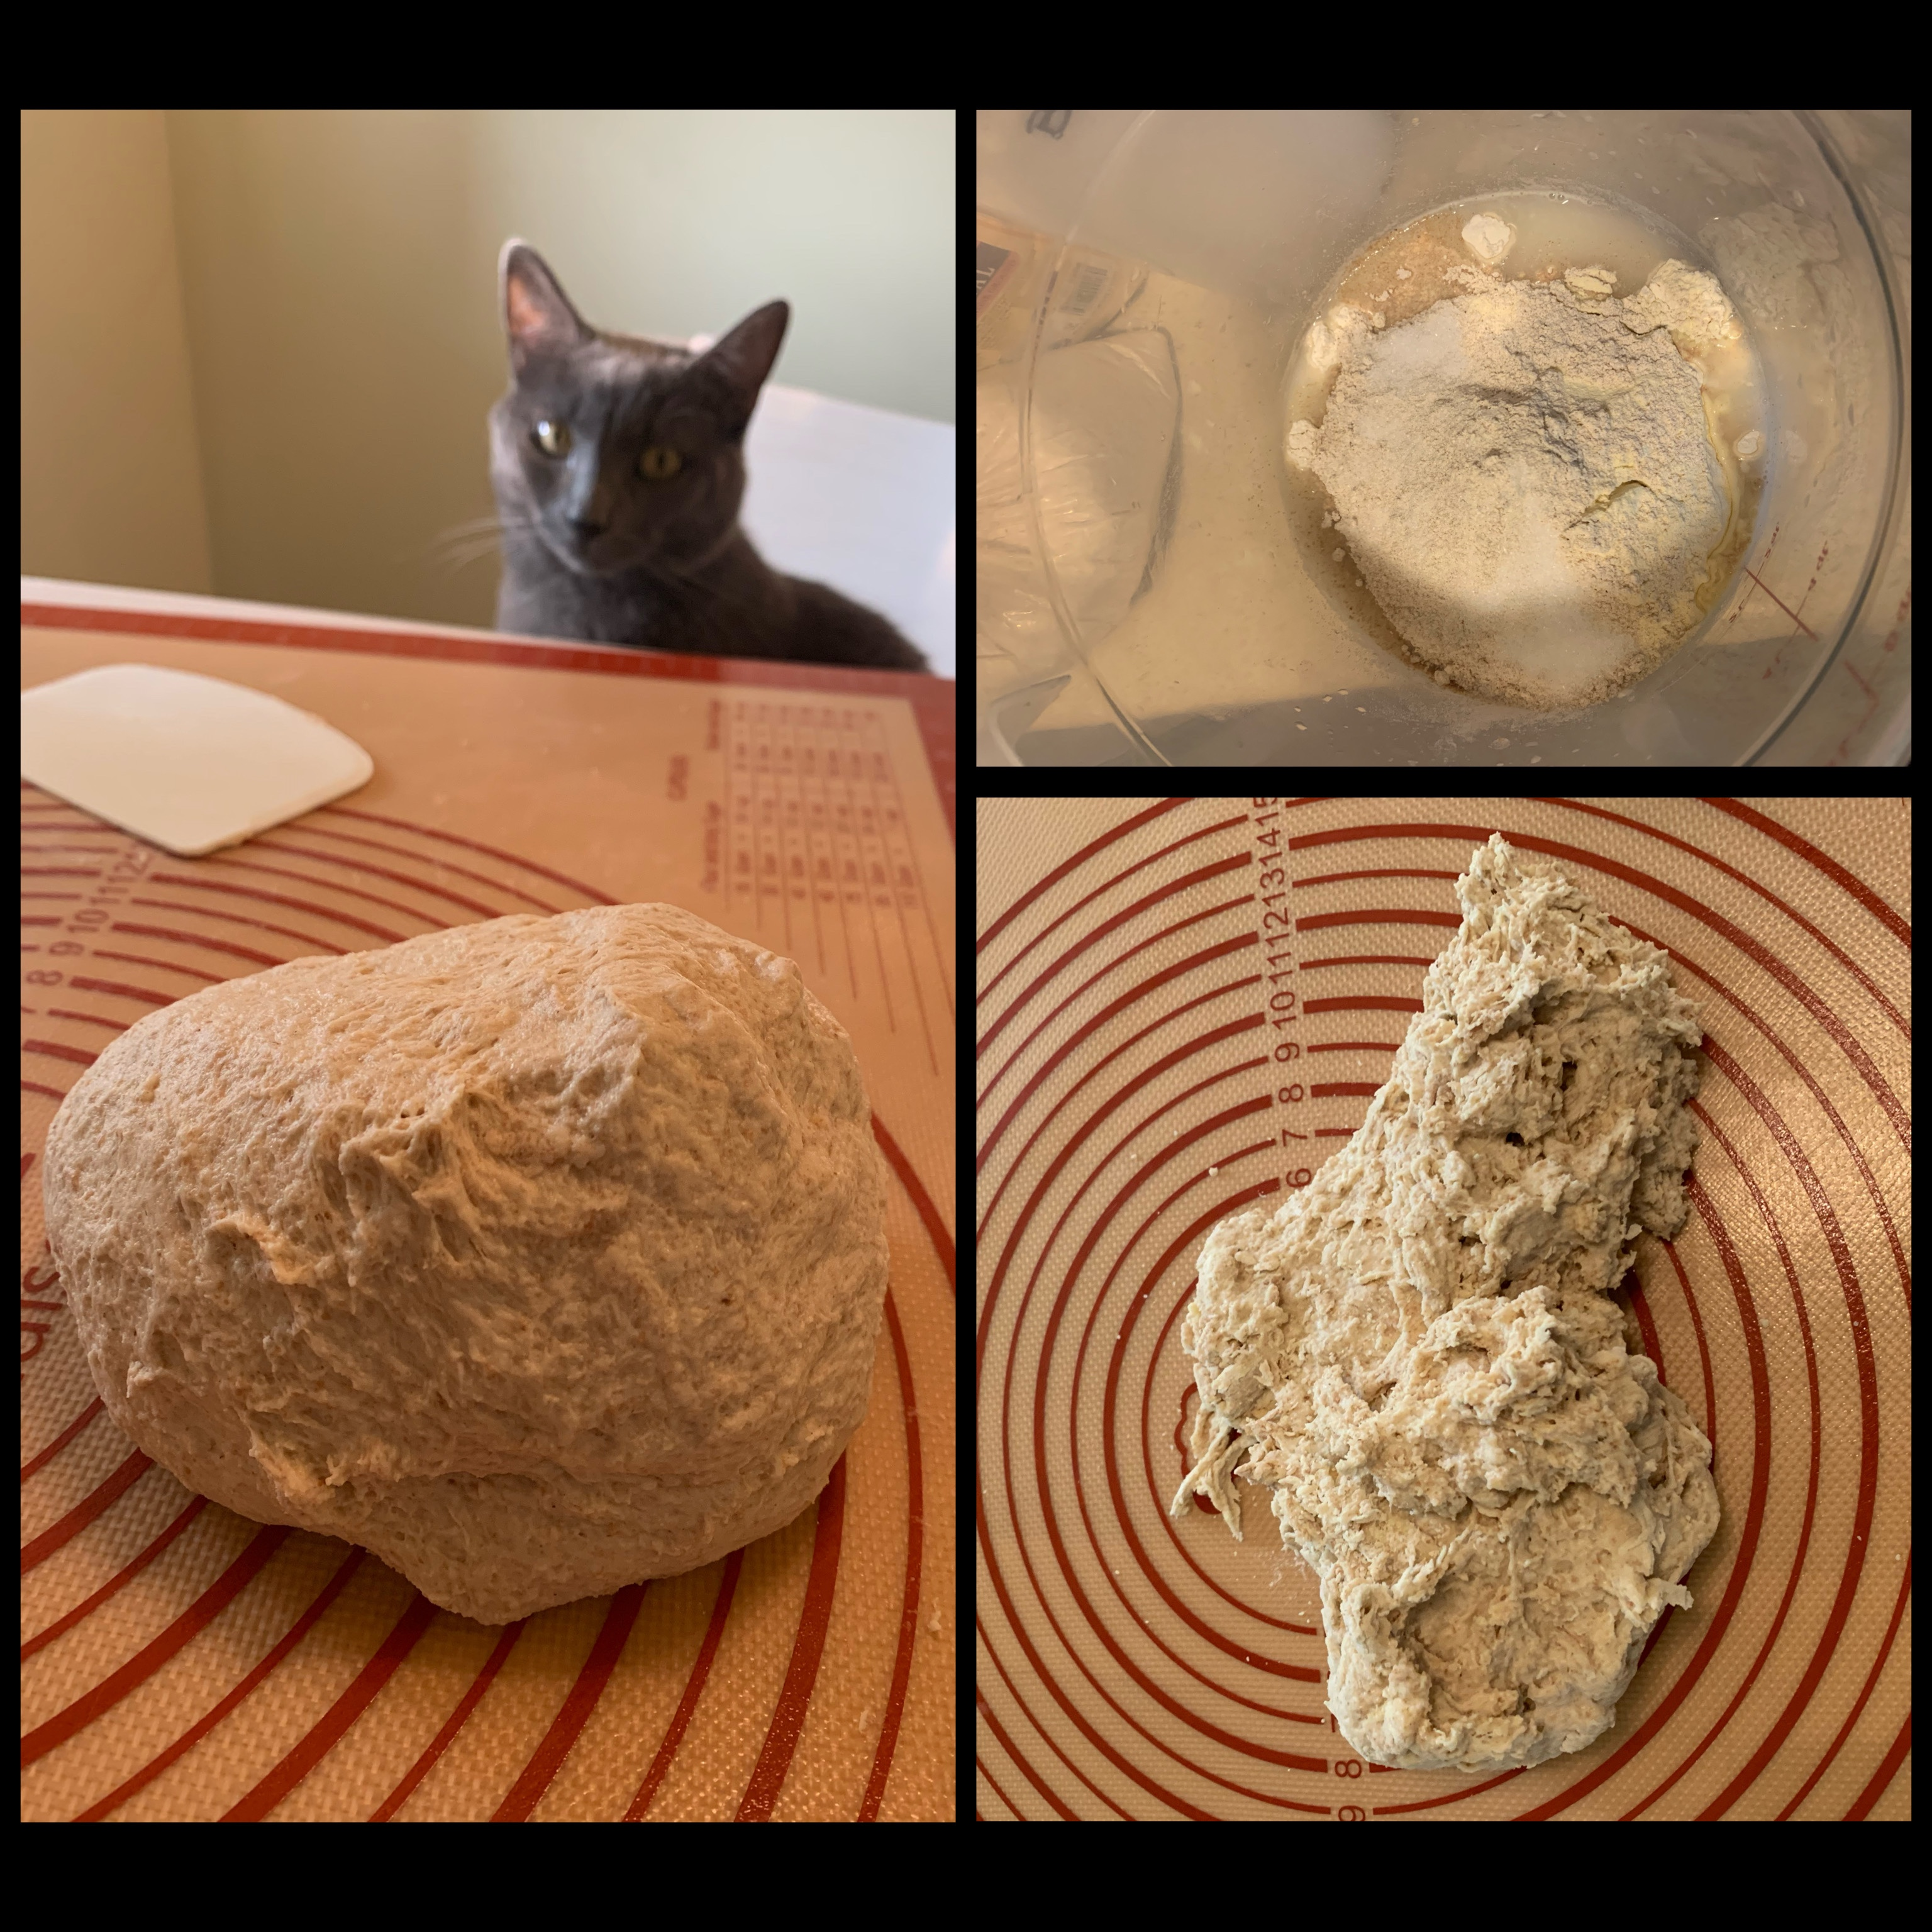 Left: ball of kneaded dough on rubber mat with grey cat in background staring at dough. Top right: dough ingredients unmixed in bottom of clear tub. Bottom right: shaggy, lightly mixed dough on rubber mat.